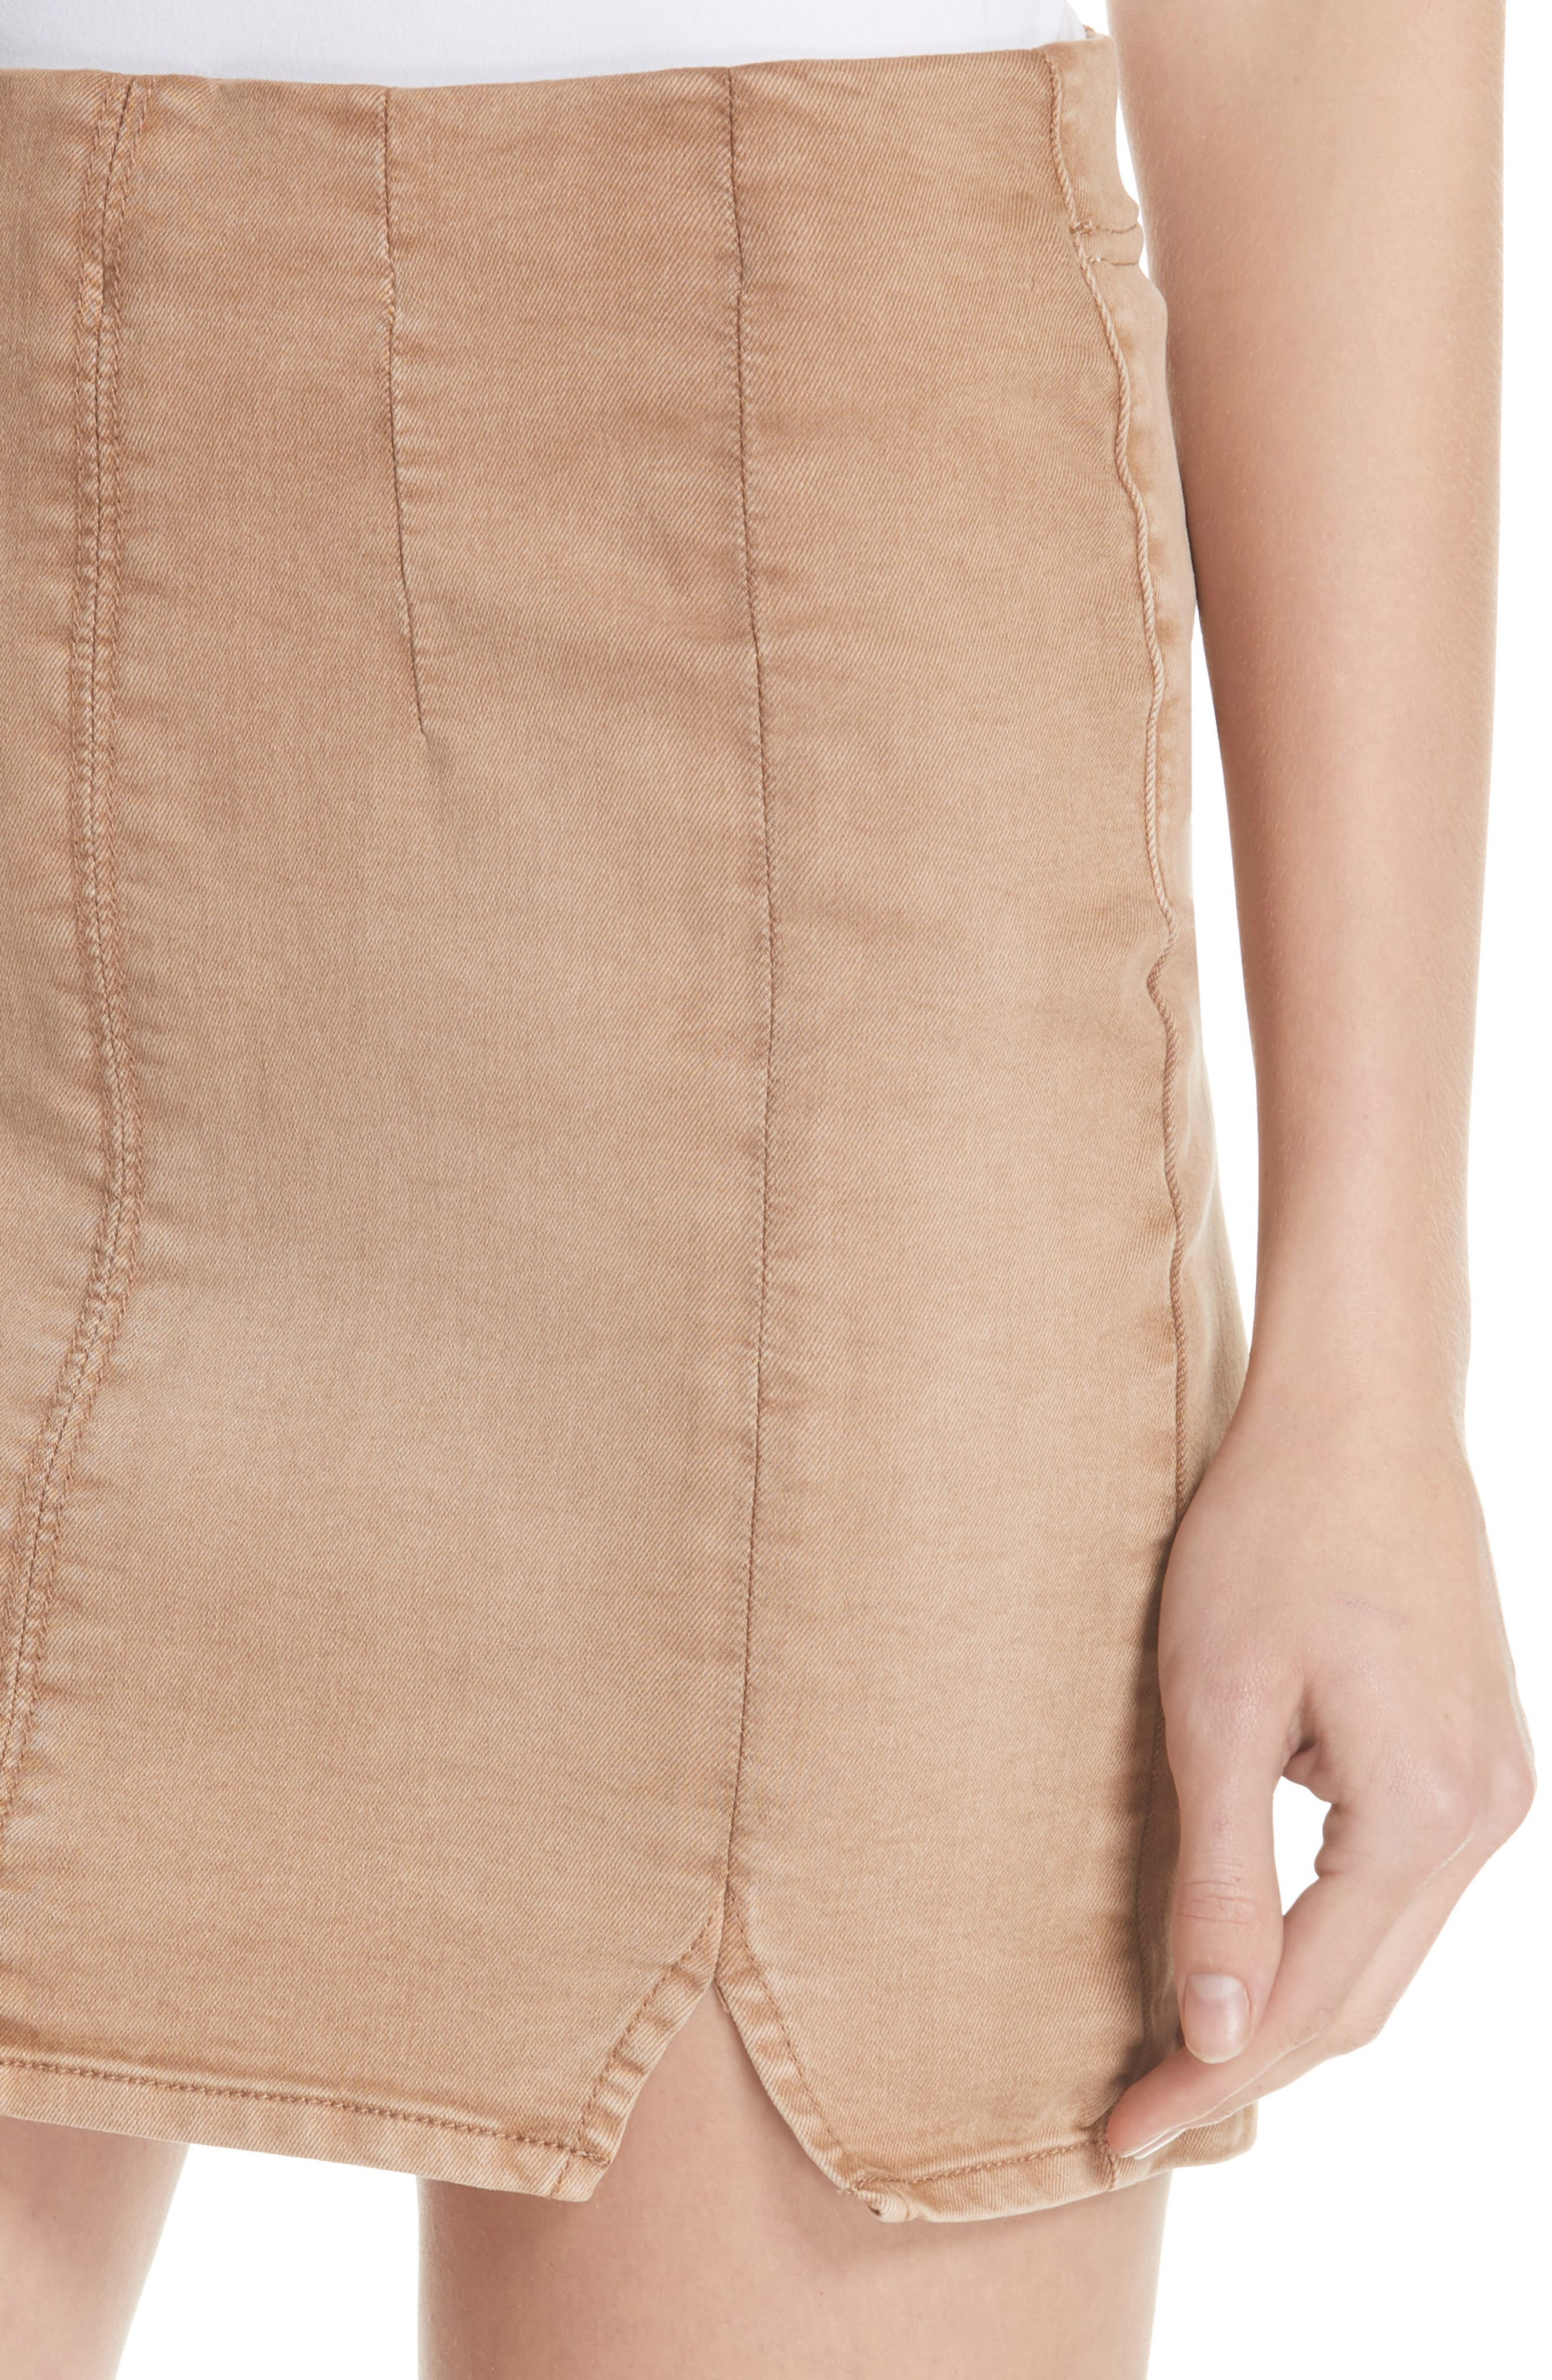 Femme Fatale Pull On Skirt,                             Alternate thumbnail 5, color,                             Khaki